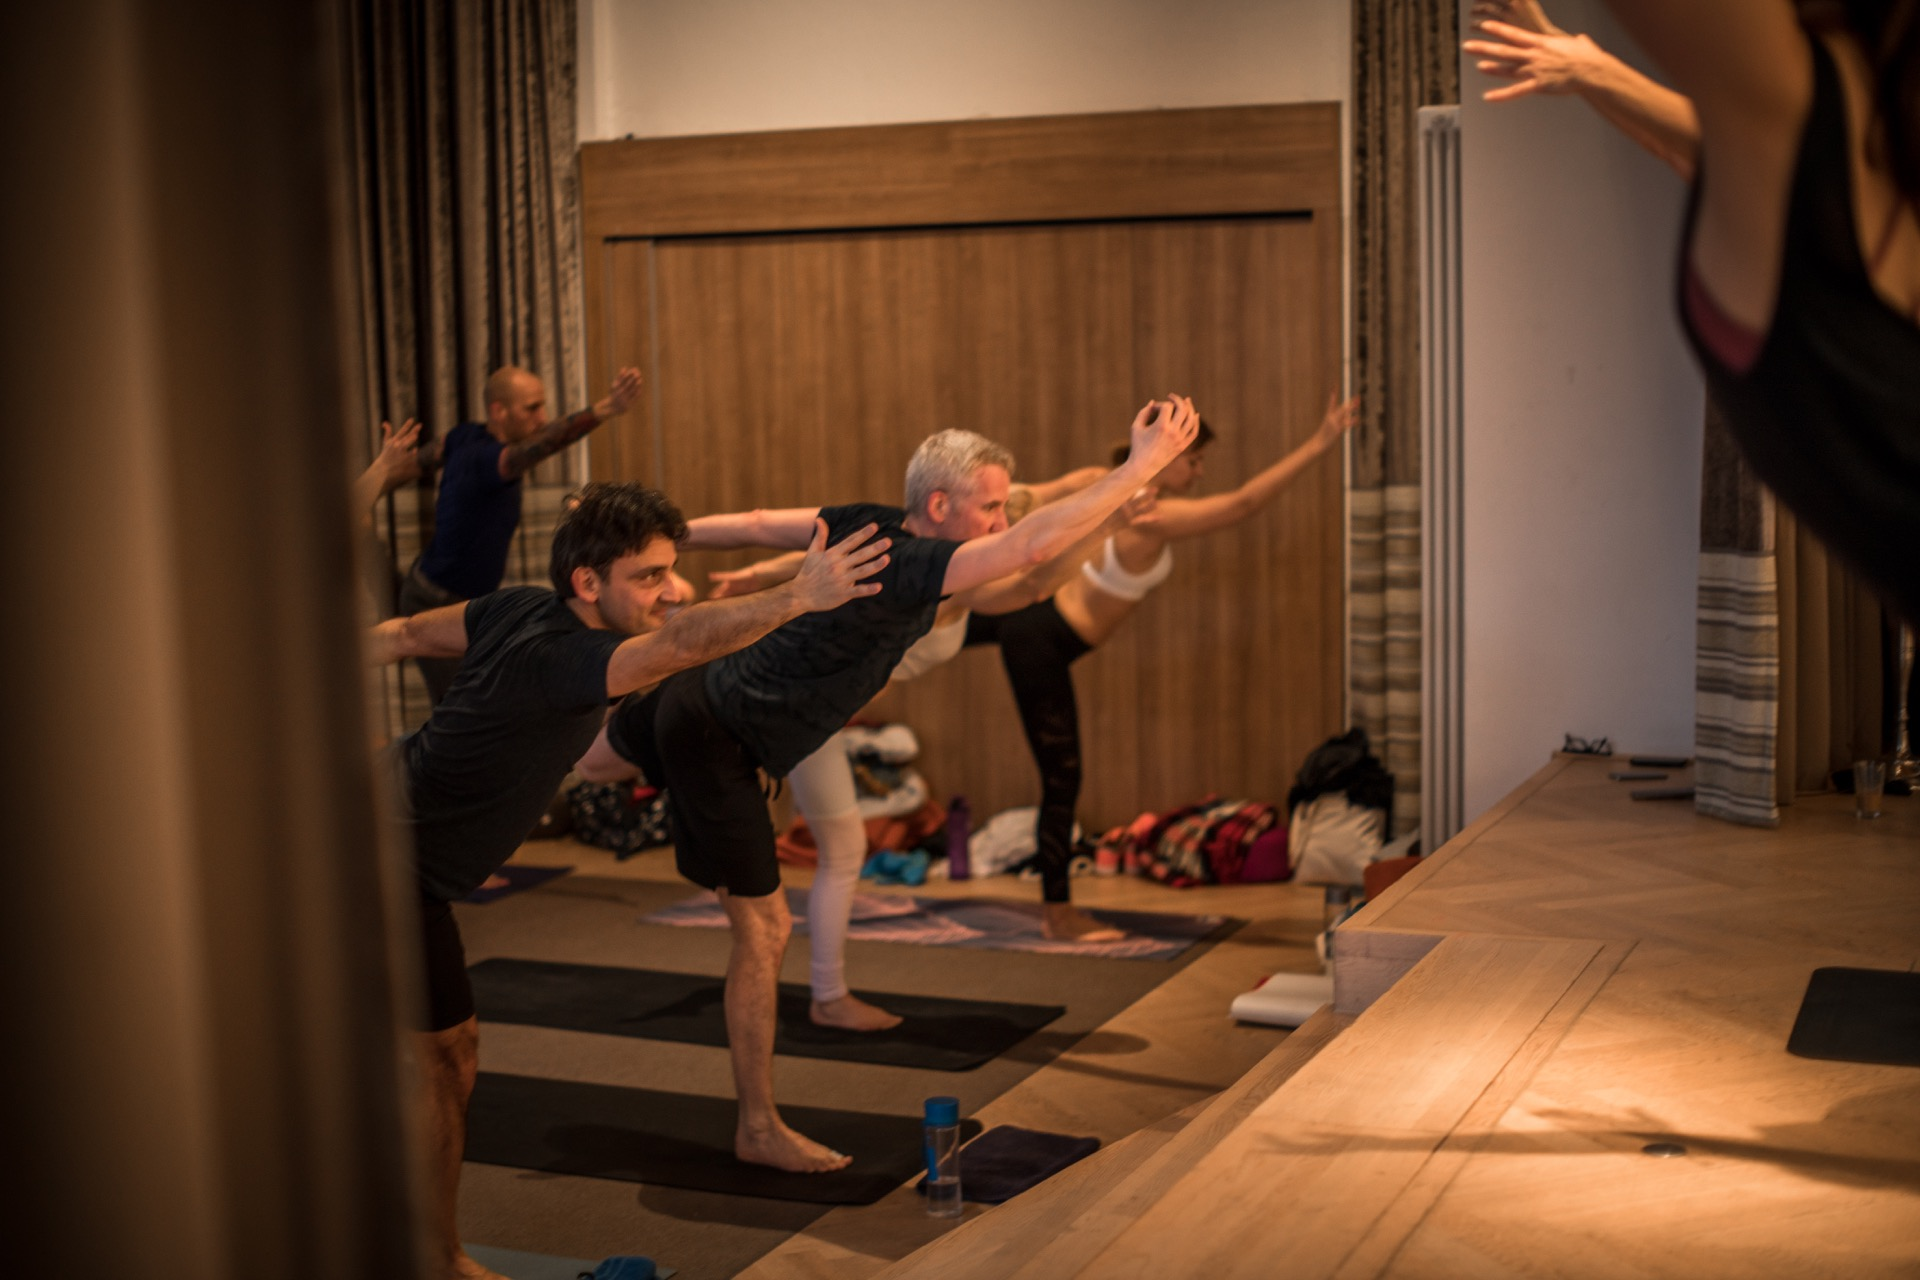 A-New-Beginning-Hie-Kim-Yoga-Retreat-Alina-Matis-Photography-027 - Hie Kim Yoga - Yoga Retreat - Yoga Workshops und Reisen